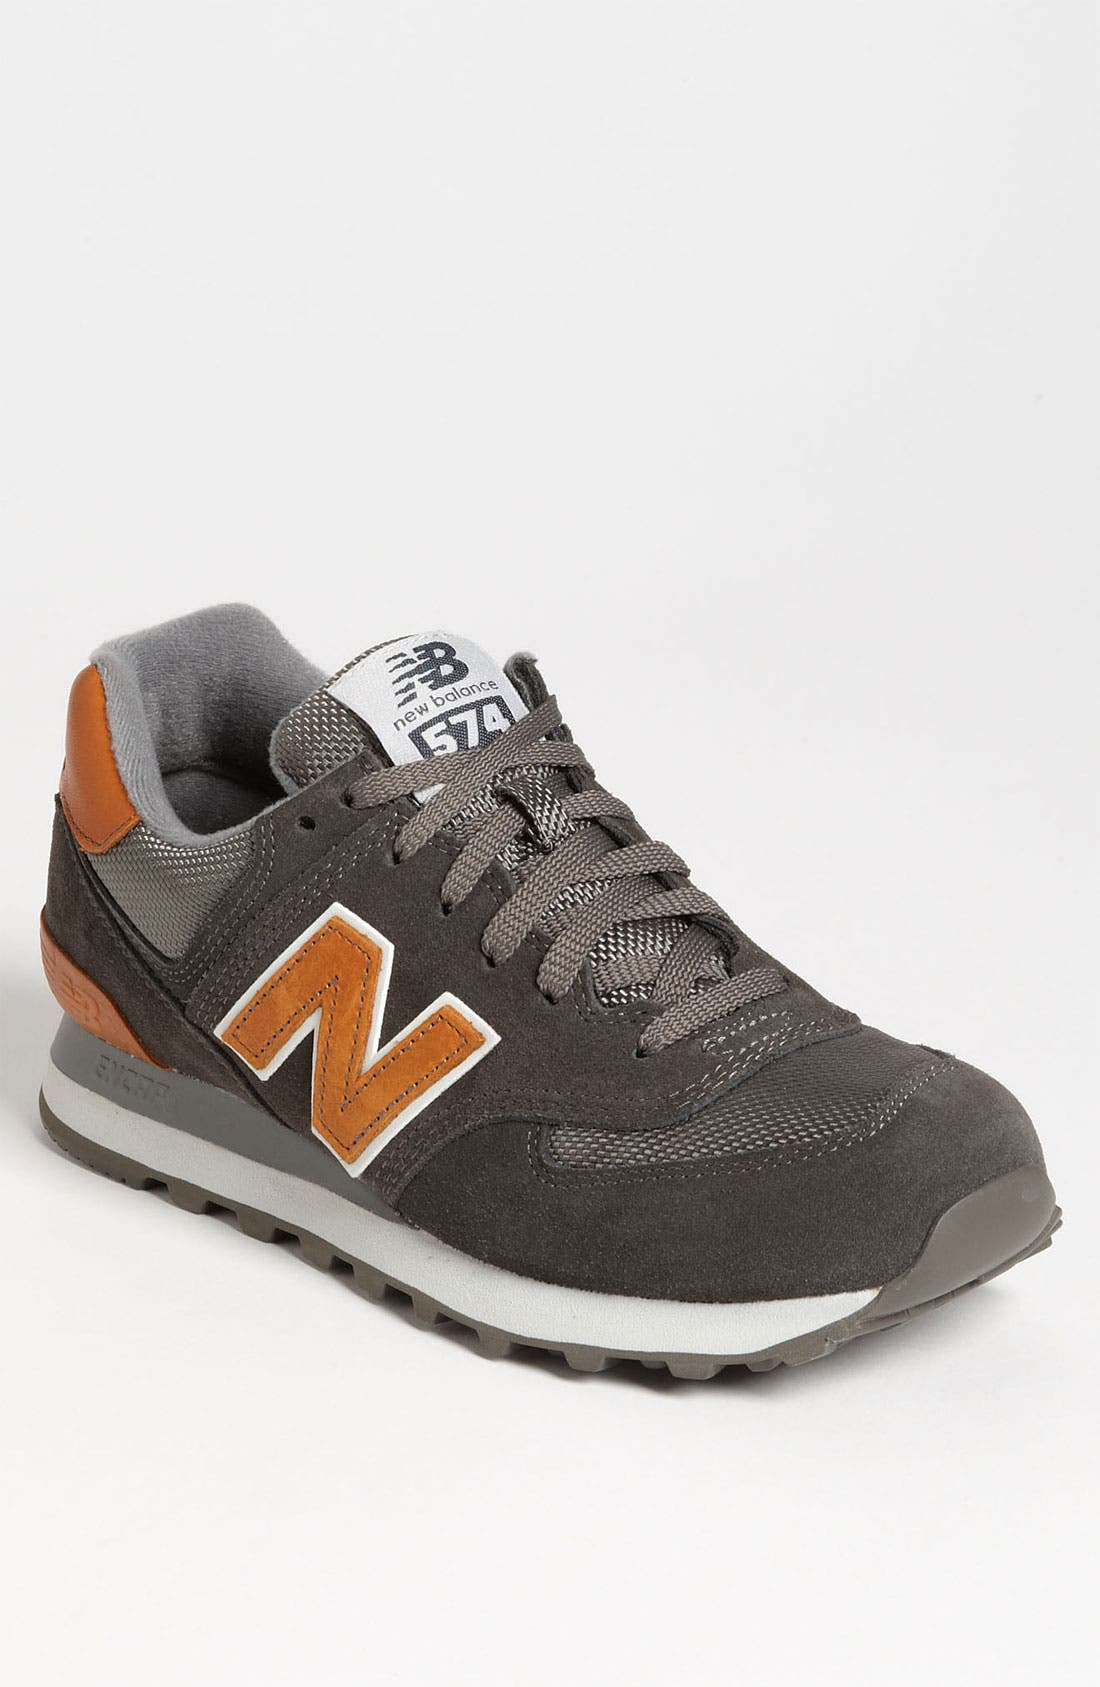 Main Image - New Balance '574' Sneaker (Men)